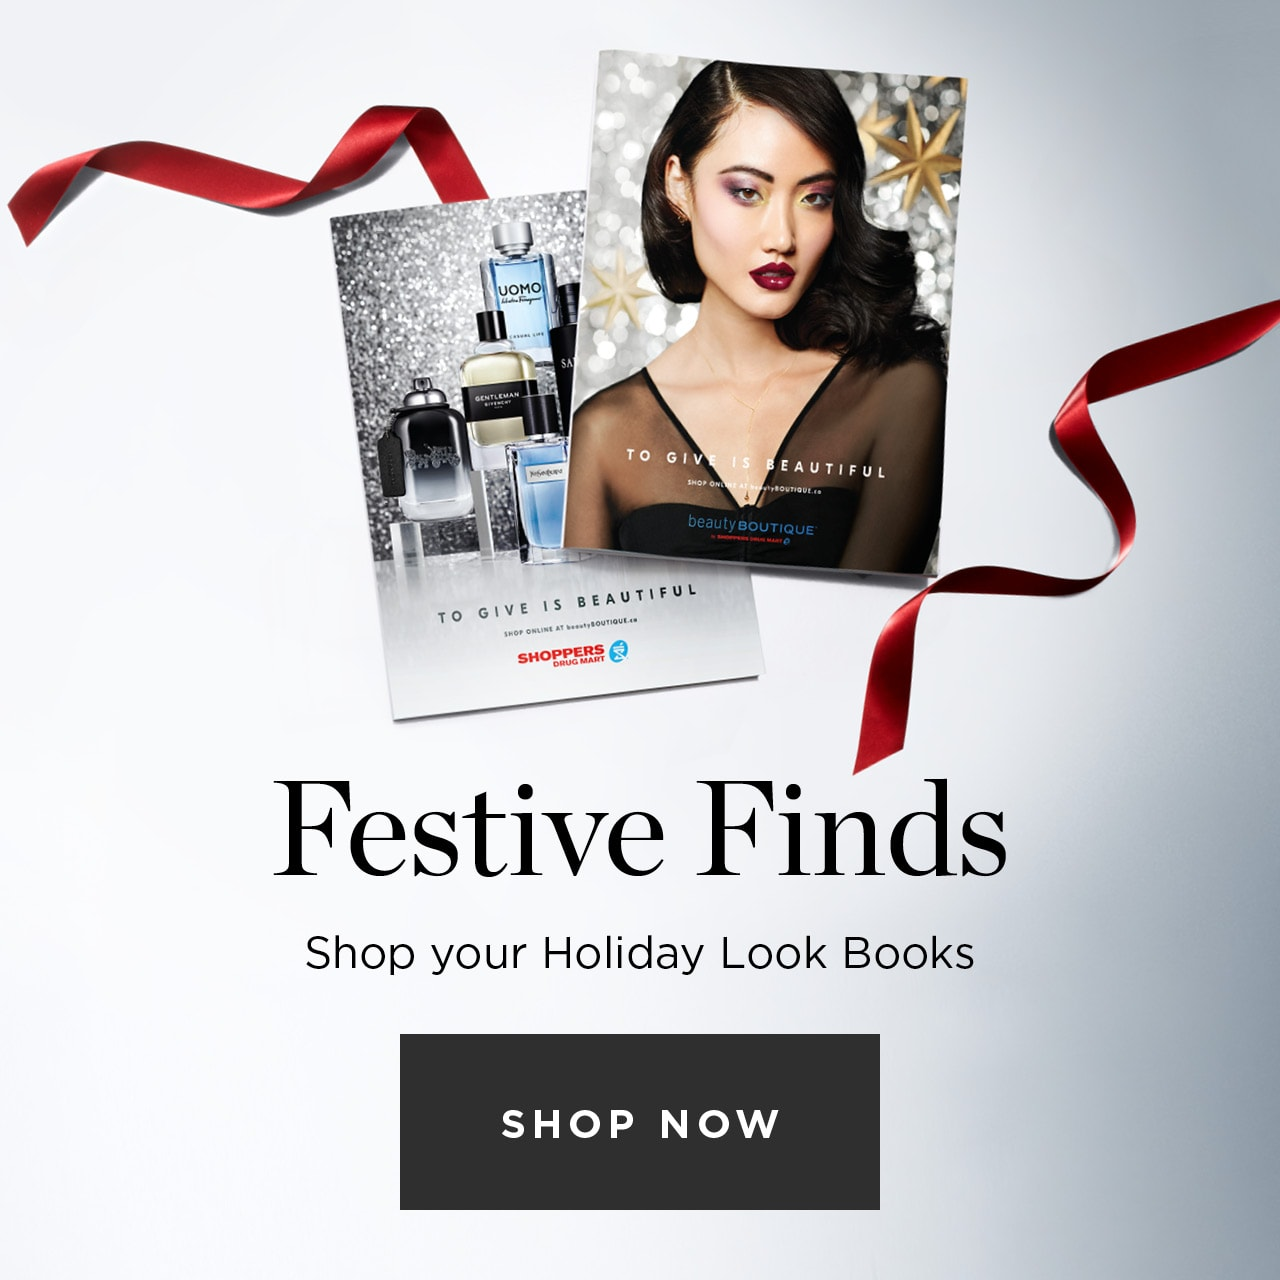 Festive finds. Shop your Holiday Look Books